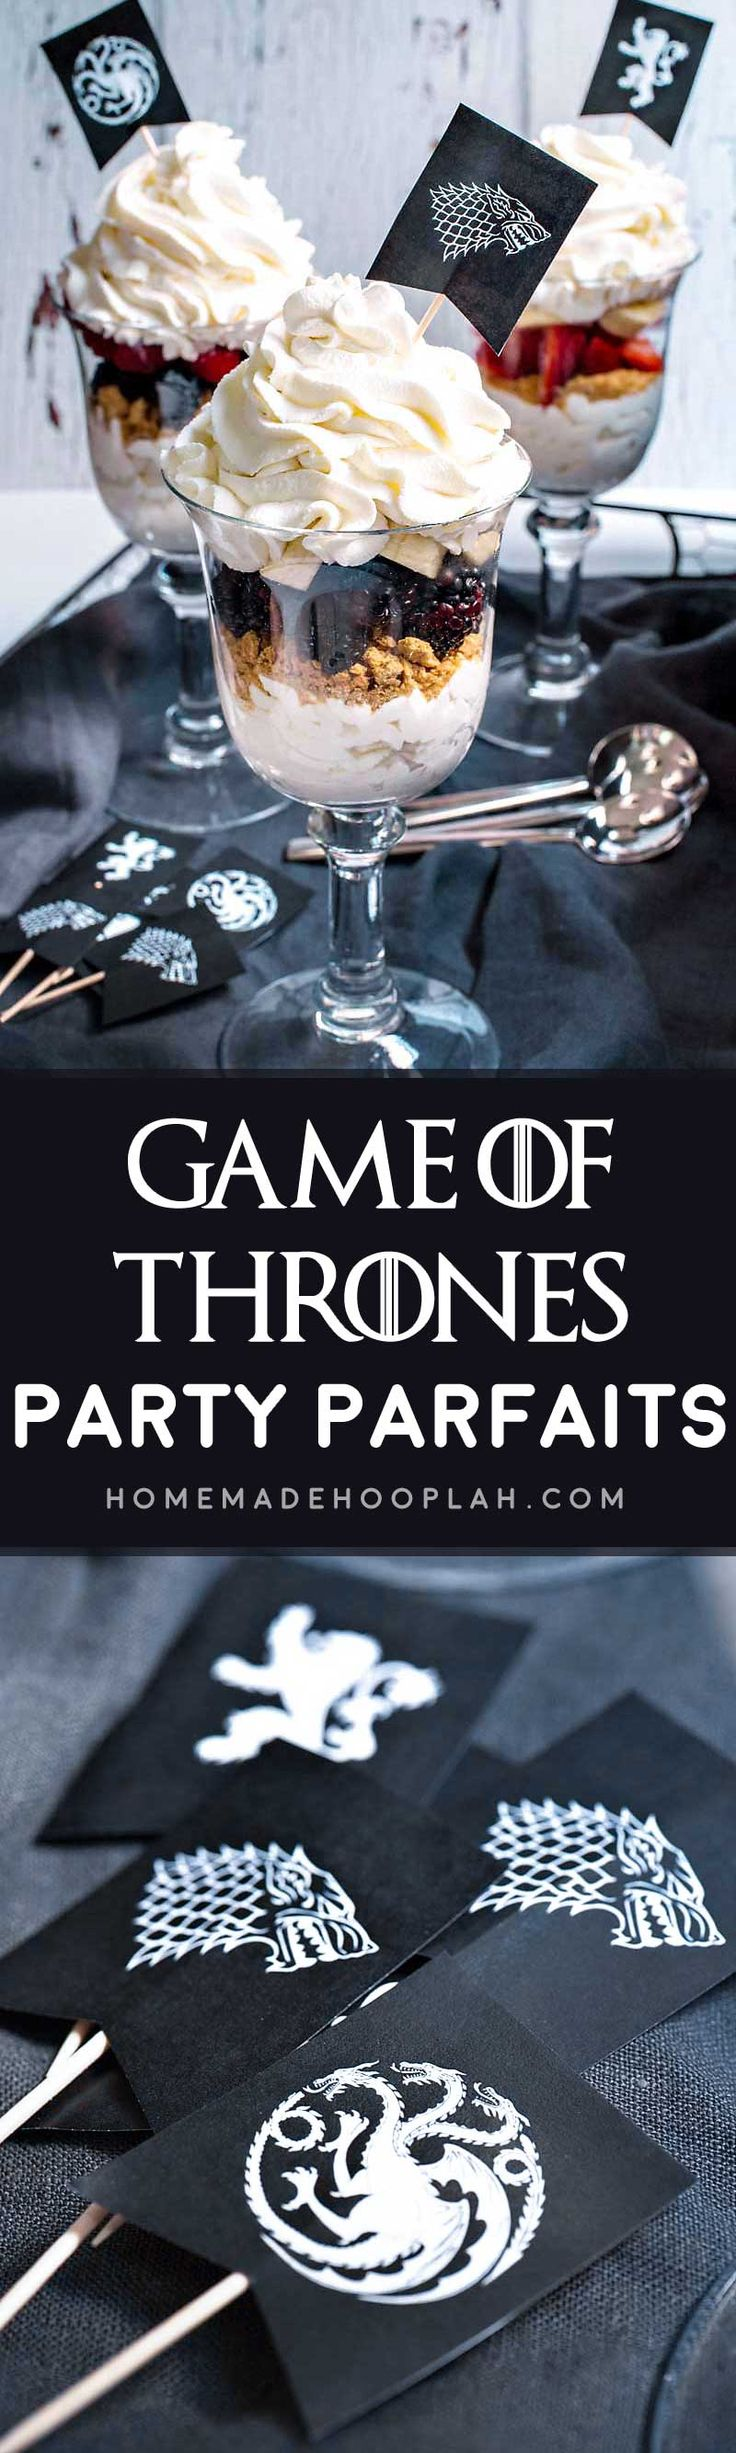 Game of Thrones Party Parfaits! Have your Game of Thrones viewing party in style with these fun party parfaits! Includes a quick and easy tutorial on how to make the flags, too! | HomemadeHooplah.com